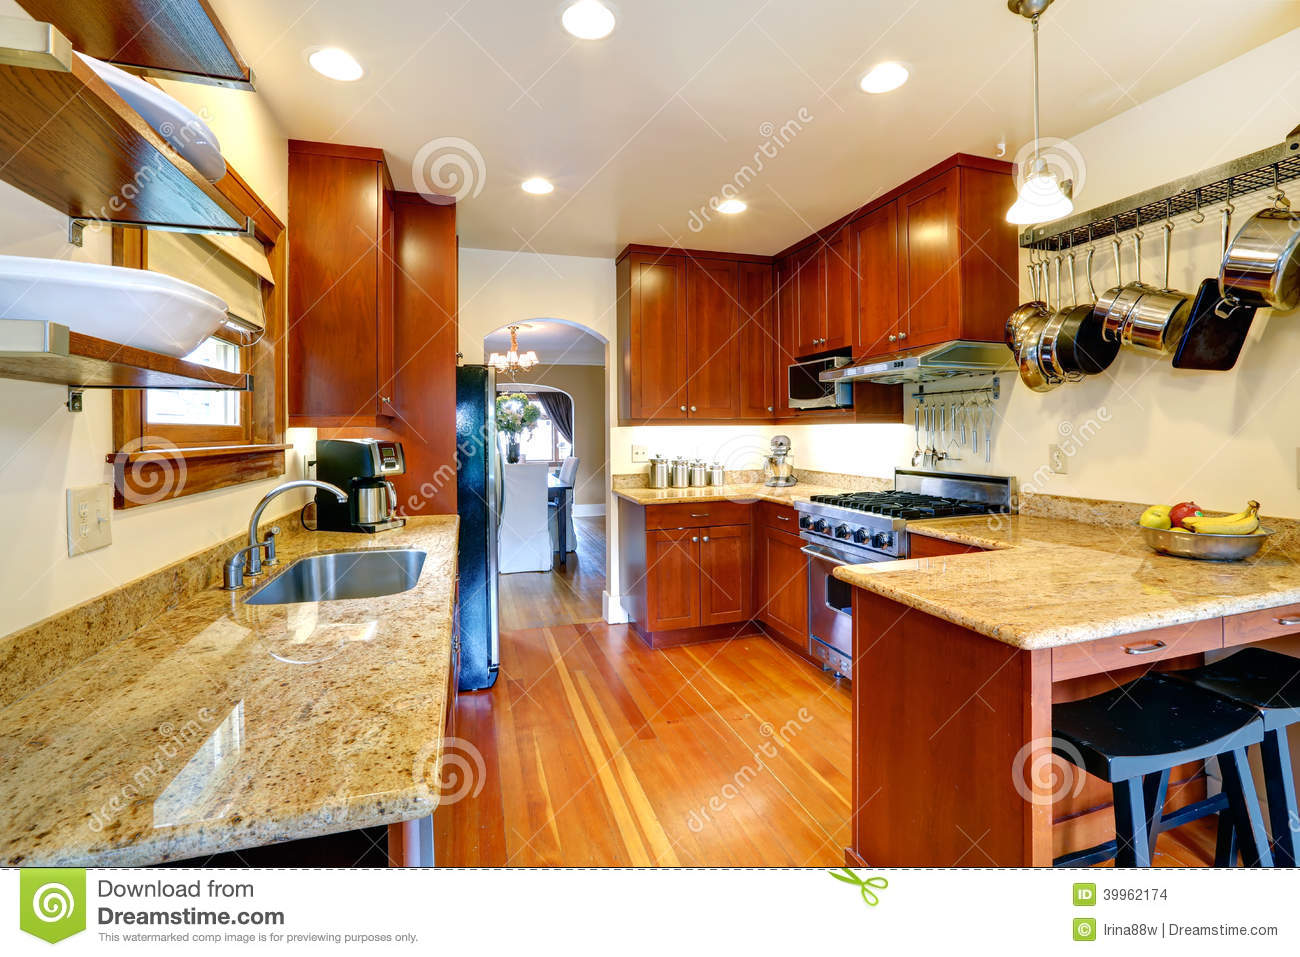 Kitchen Cabinets Hanging From Ceiling Kitchen Room With Archway To Dining Area Stock Photo